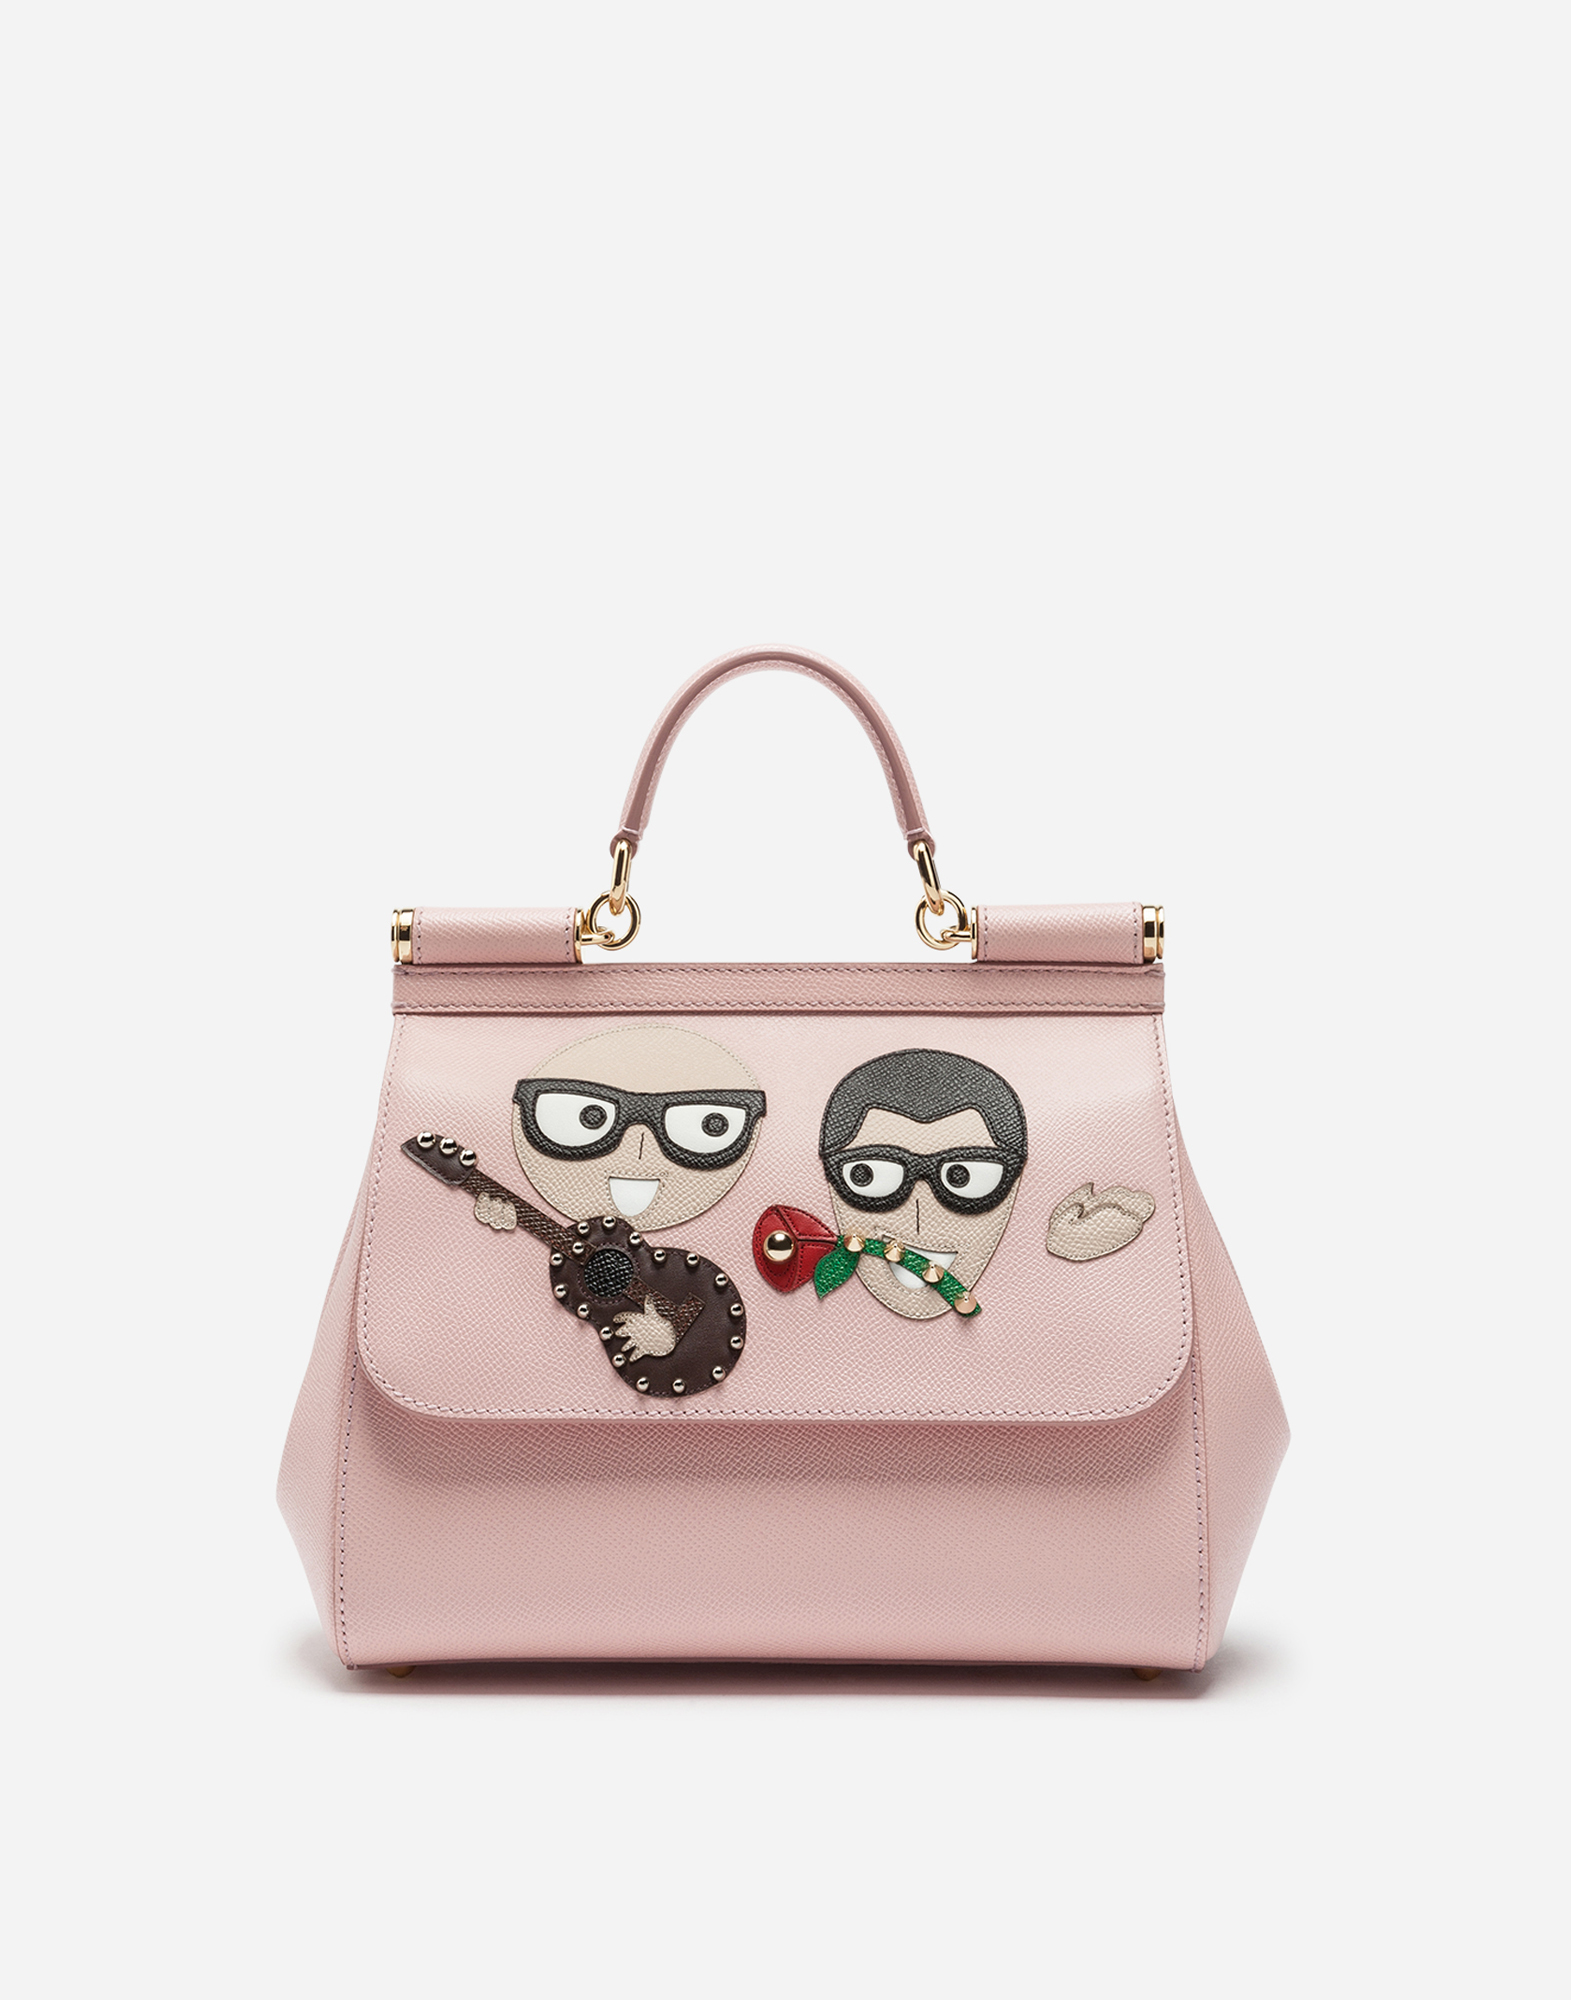 Dolce & Gabbana SICILY HANDBAG IN DAUPHINE CALFSKIN WITH DESIGNERS' PATCHES